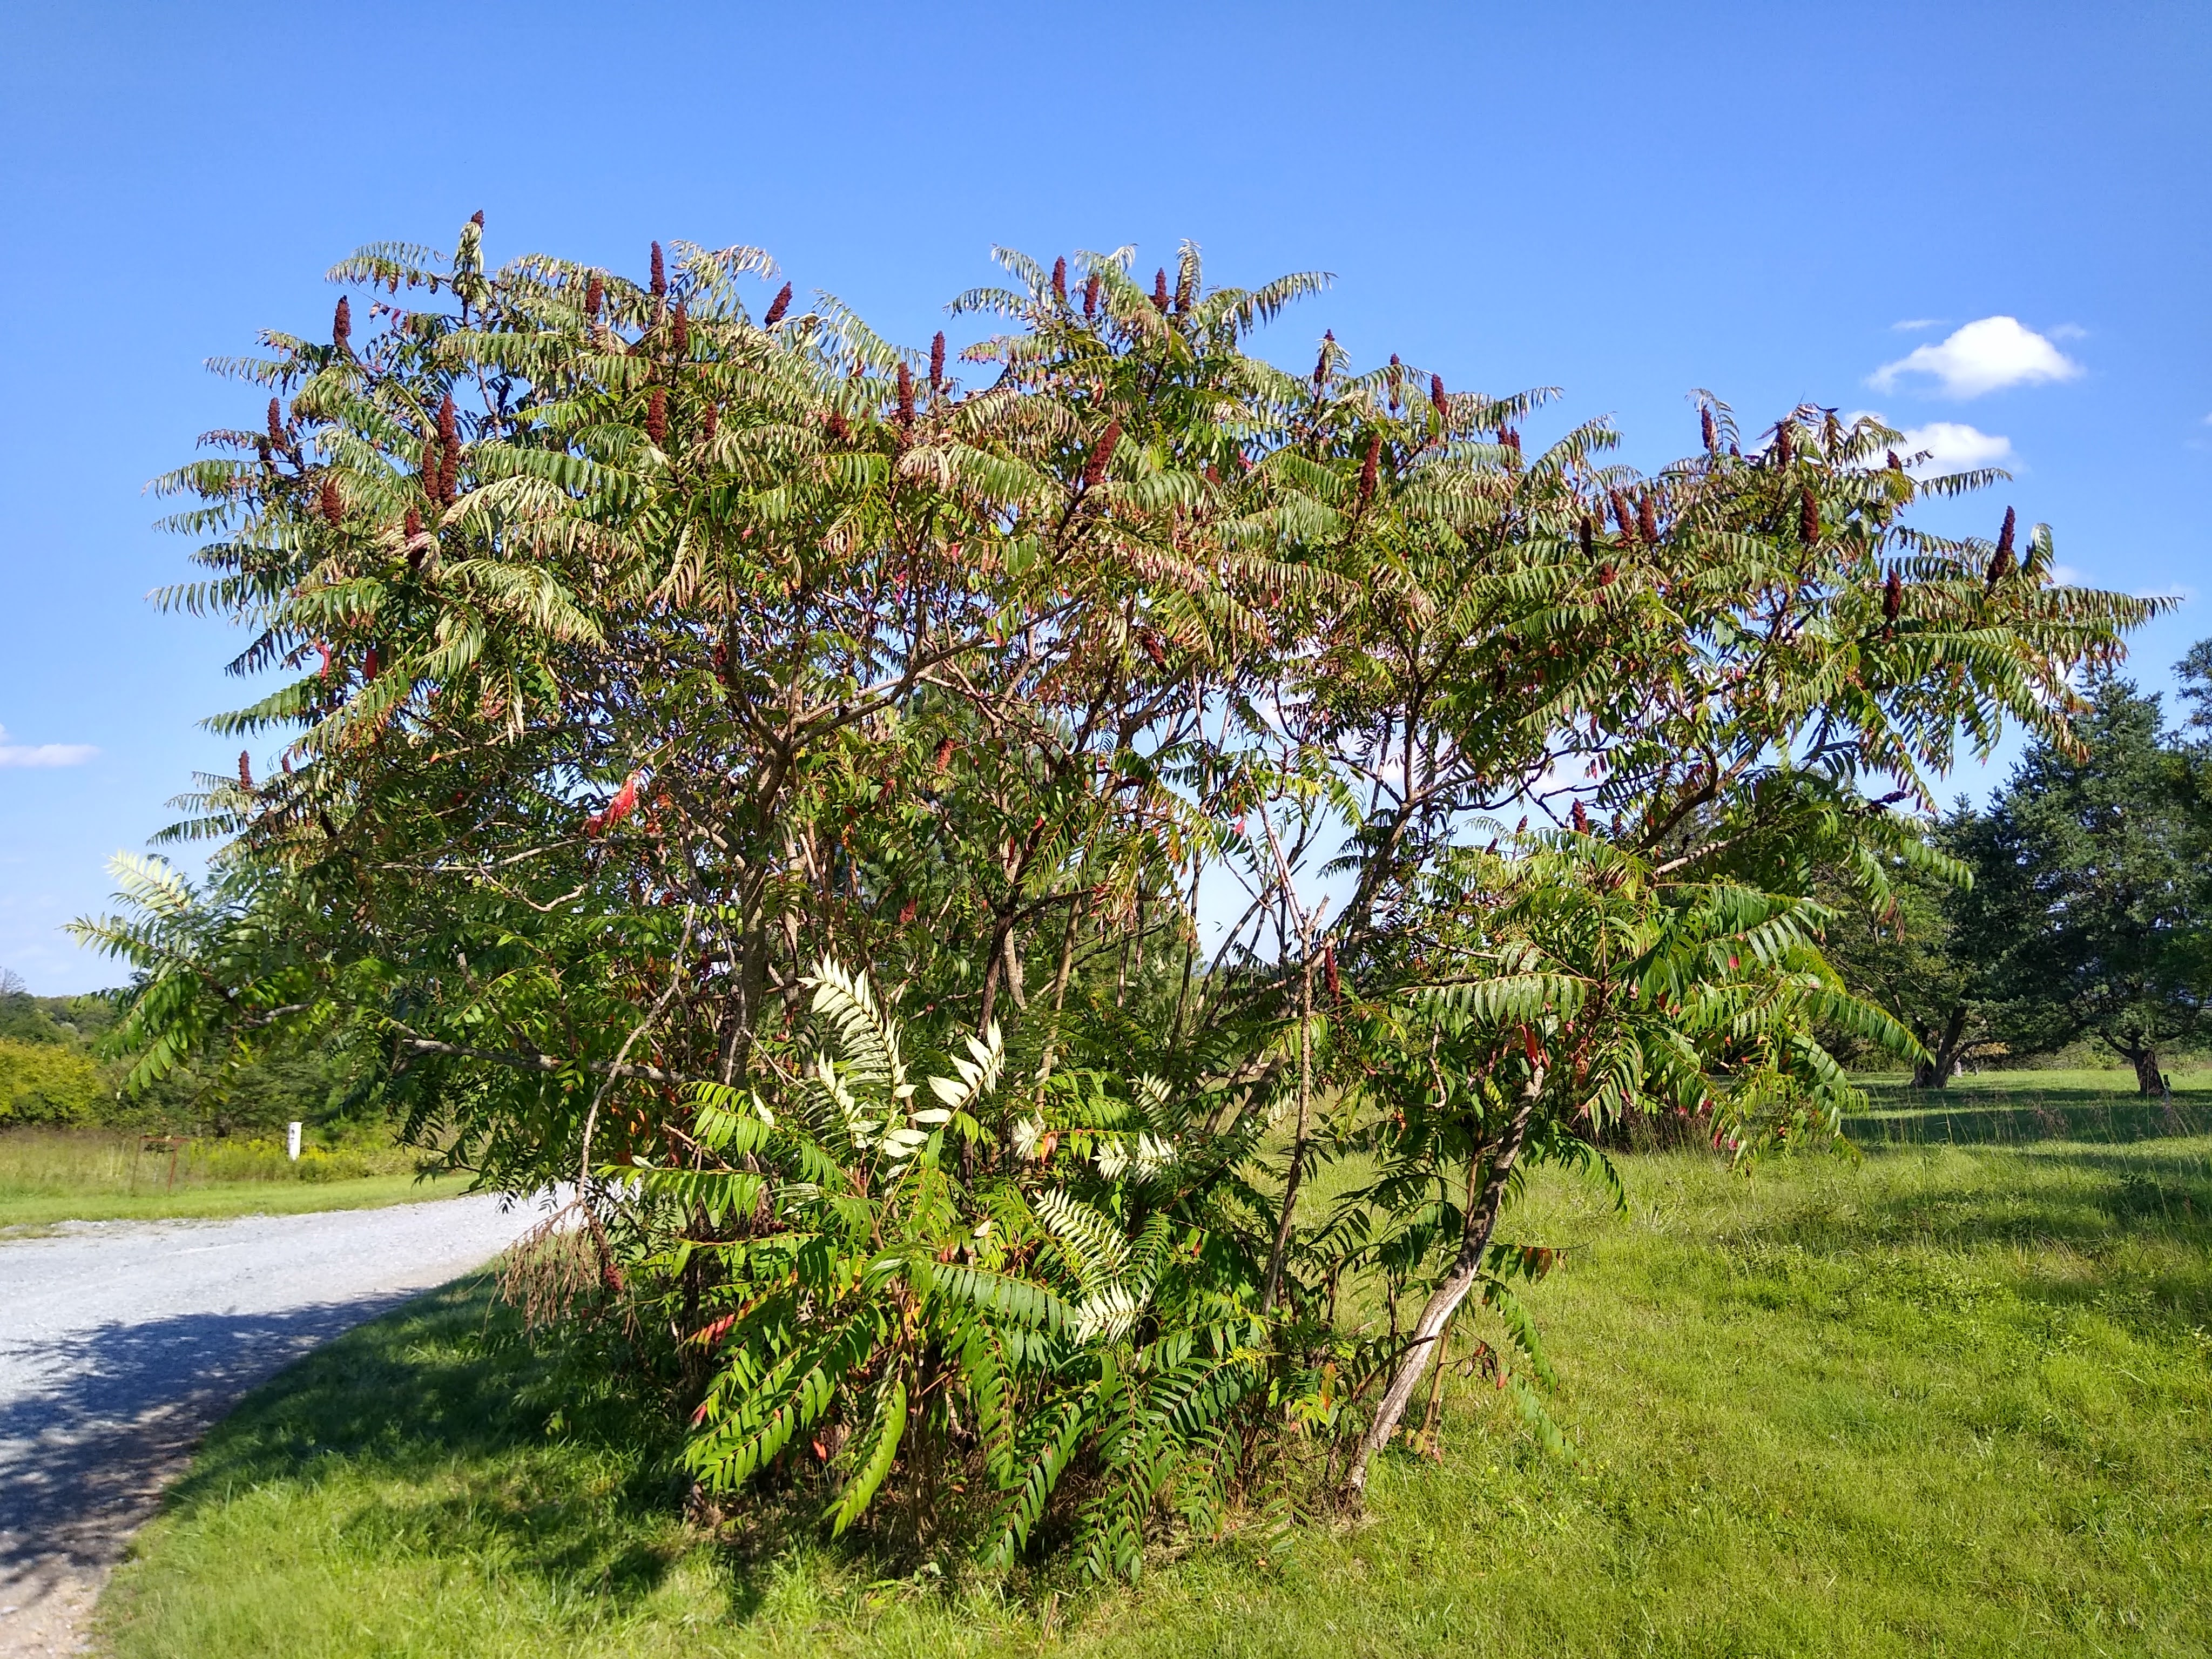 Smooth Sumac bush in front of a blue sky